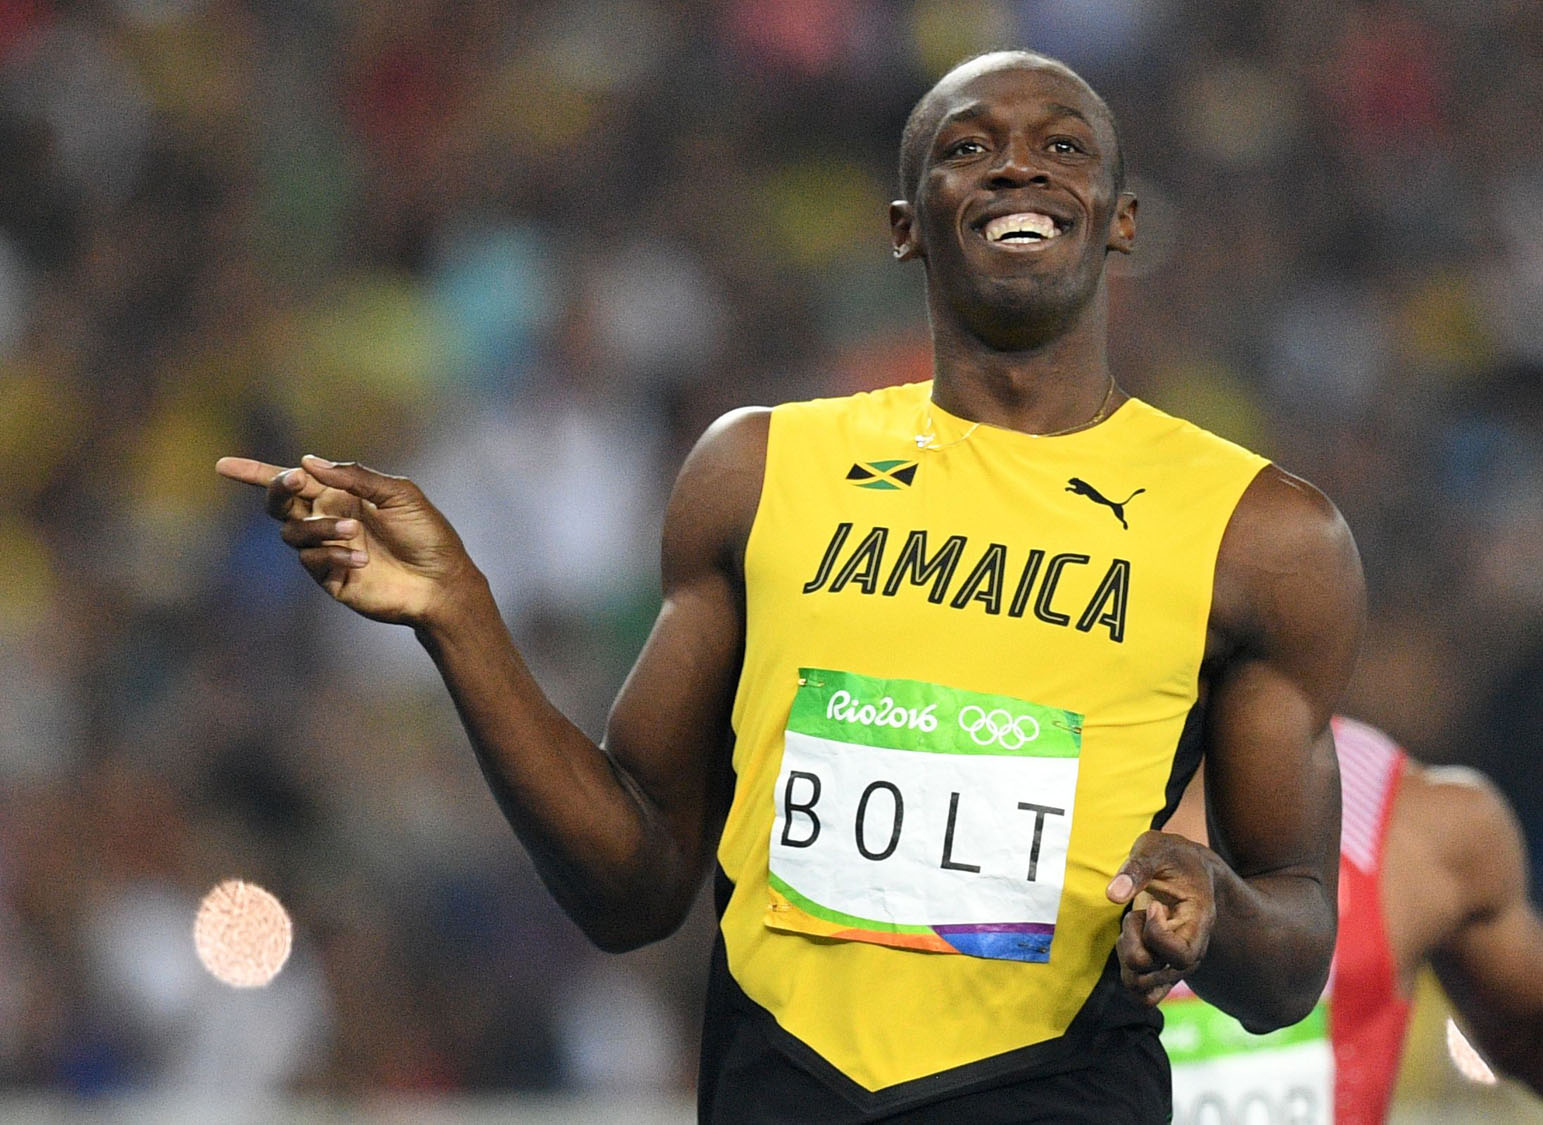 Usain Bolt wins men's 200-meter semifinal at Rio 2016 Olympics